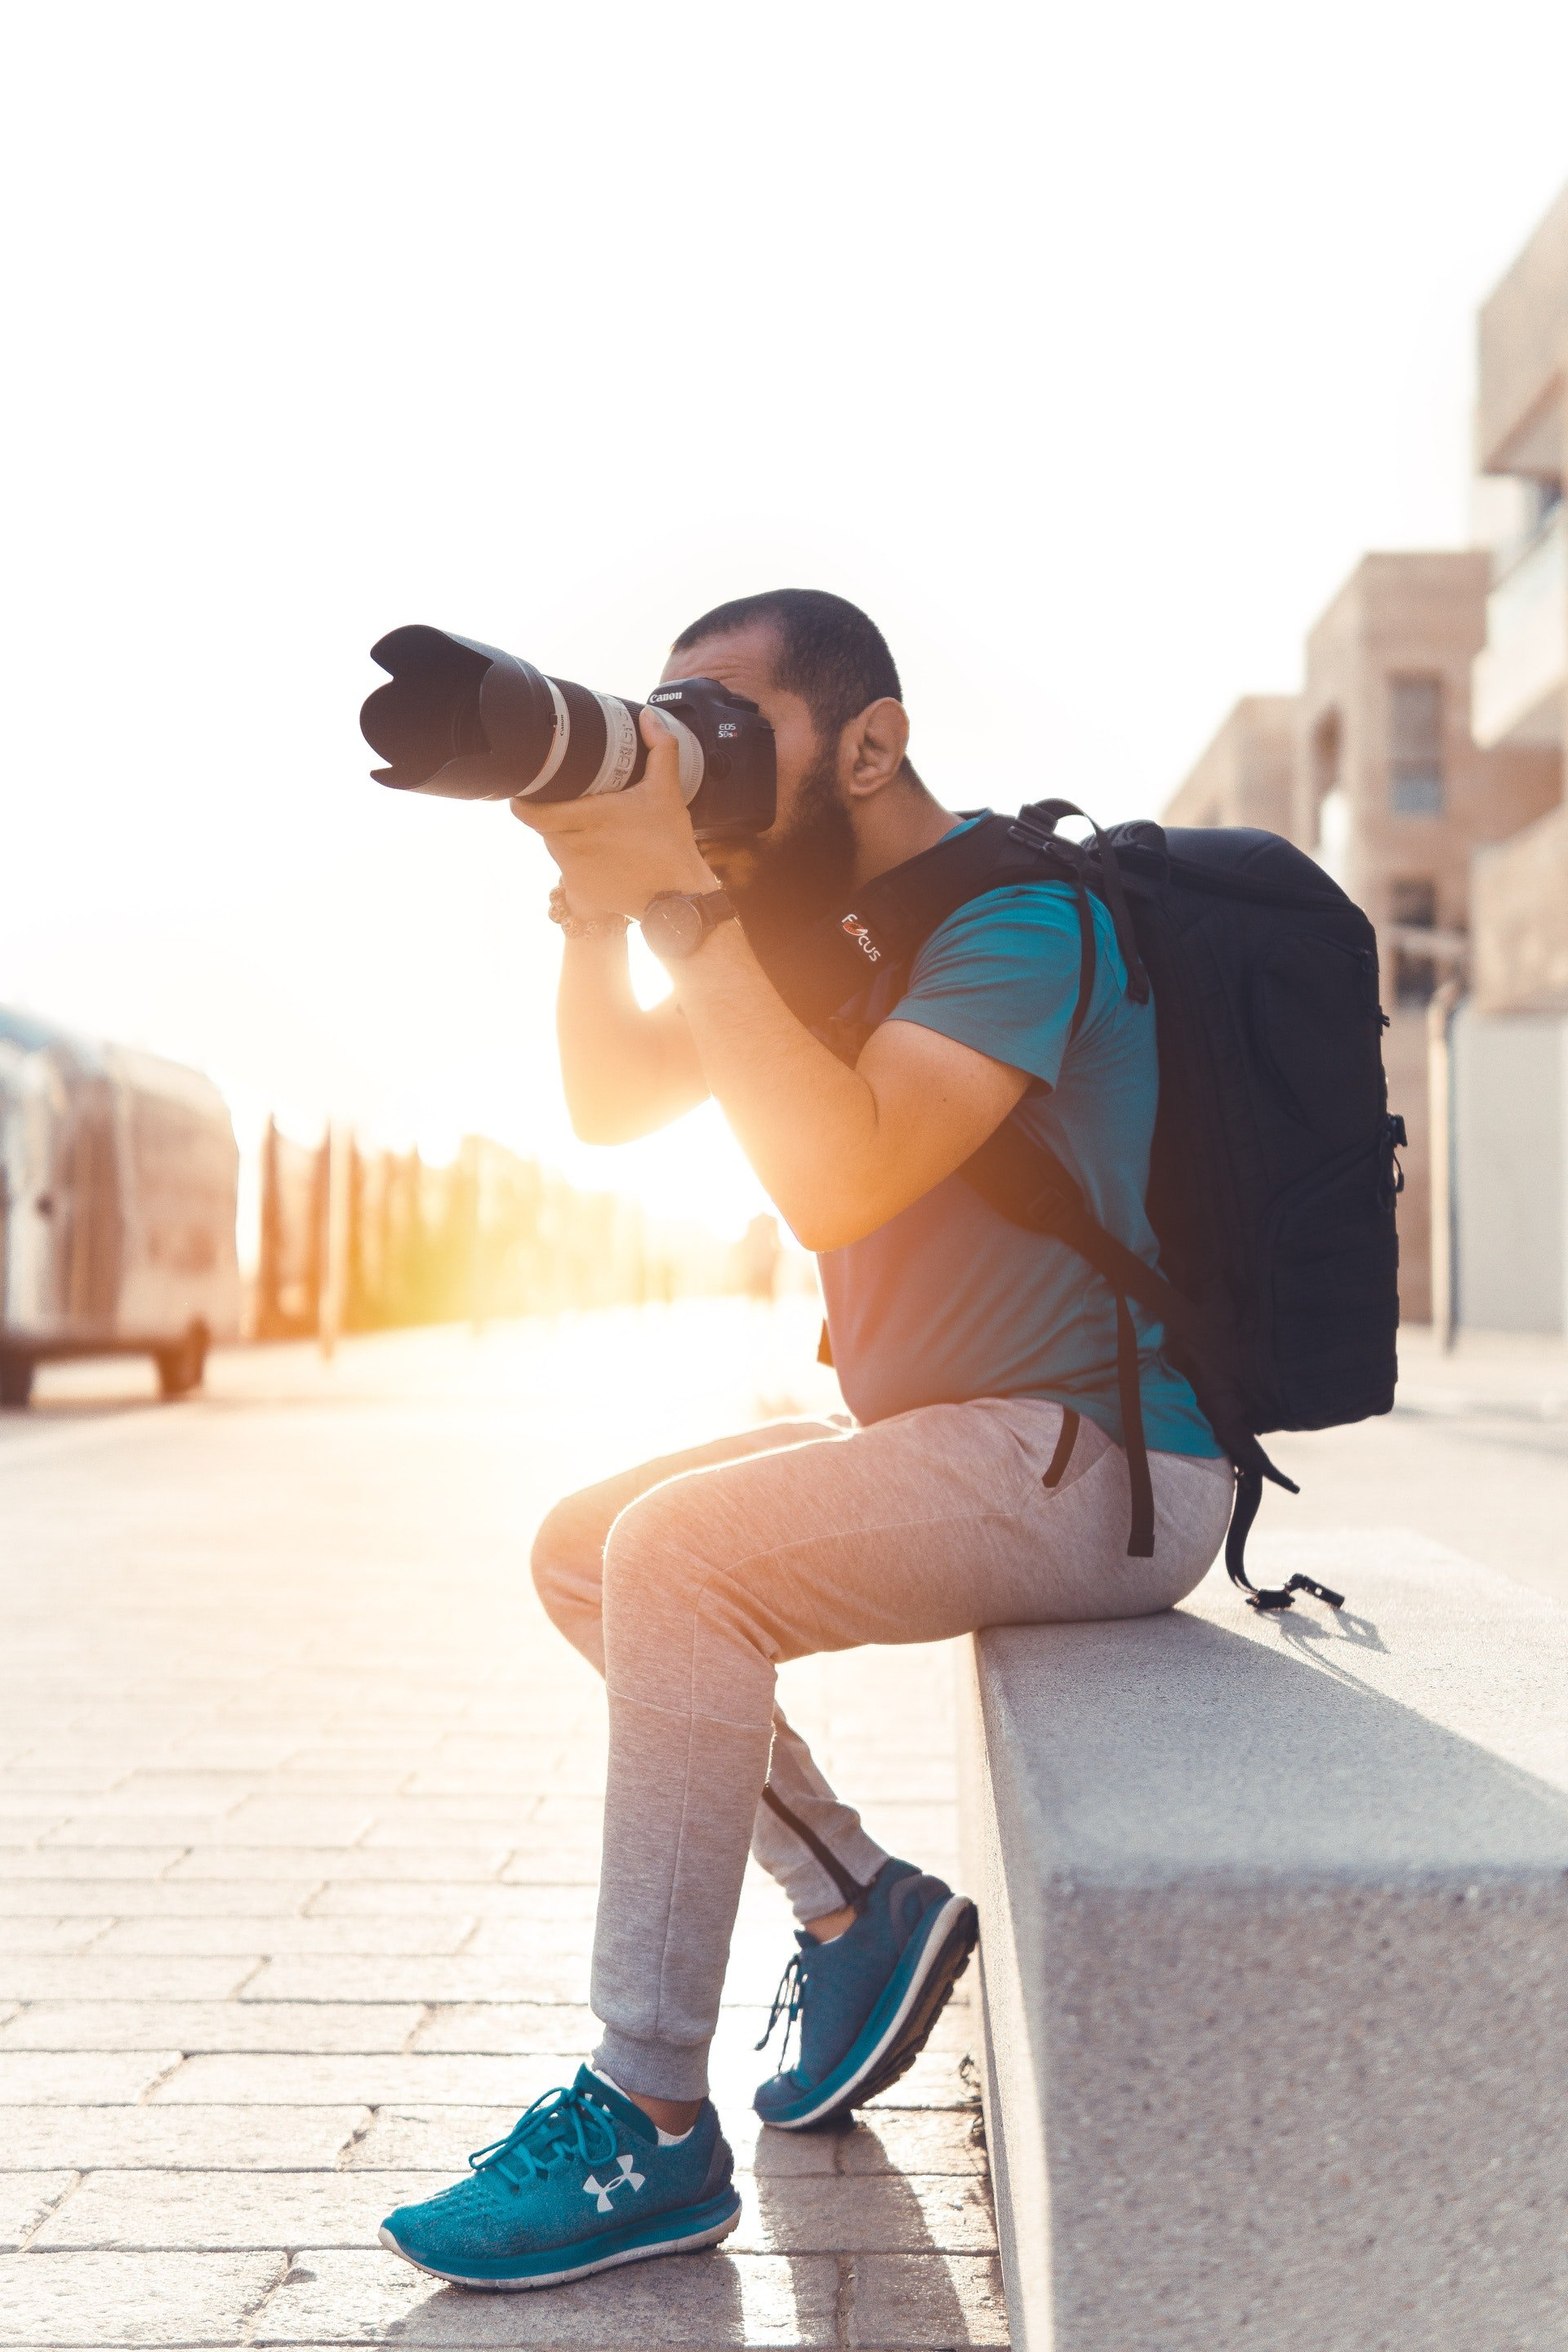 Photo of a photographer taking pictures   Photo: Pexels